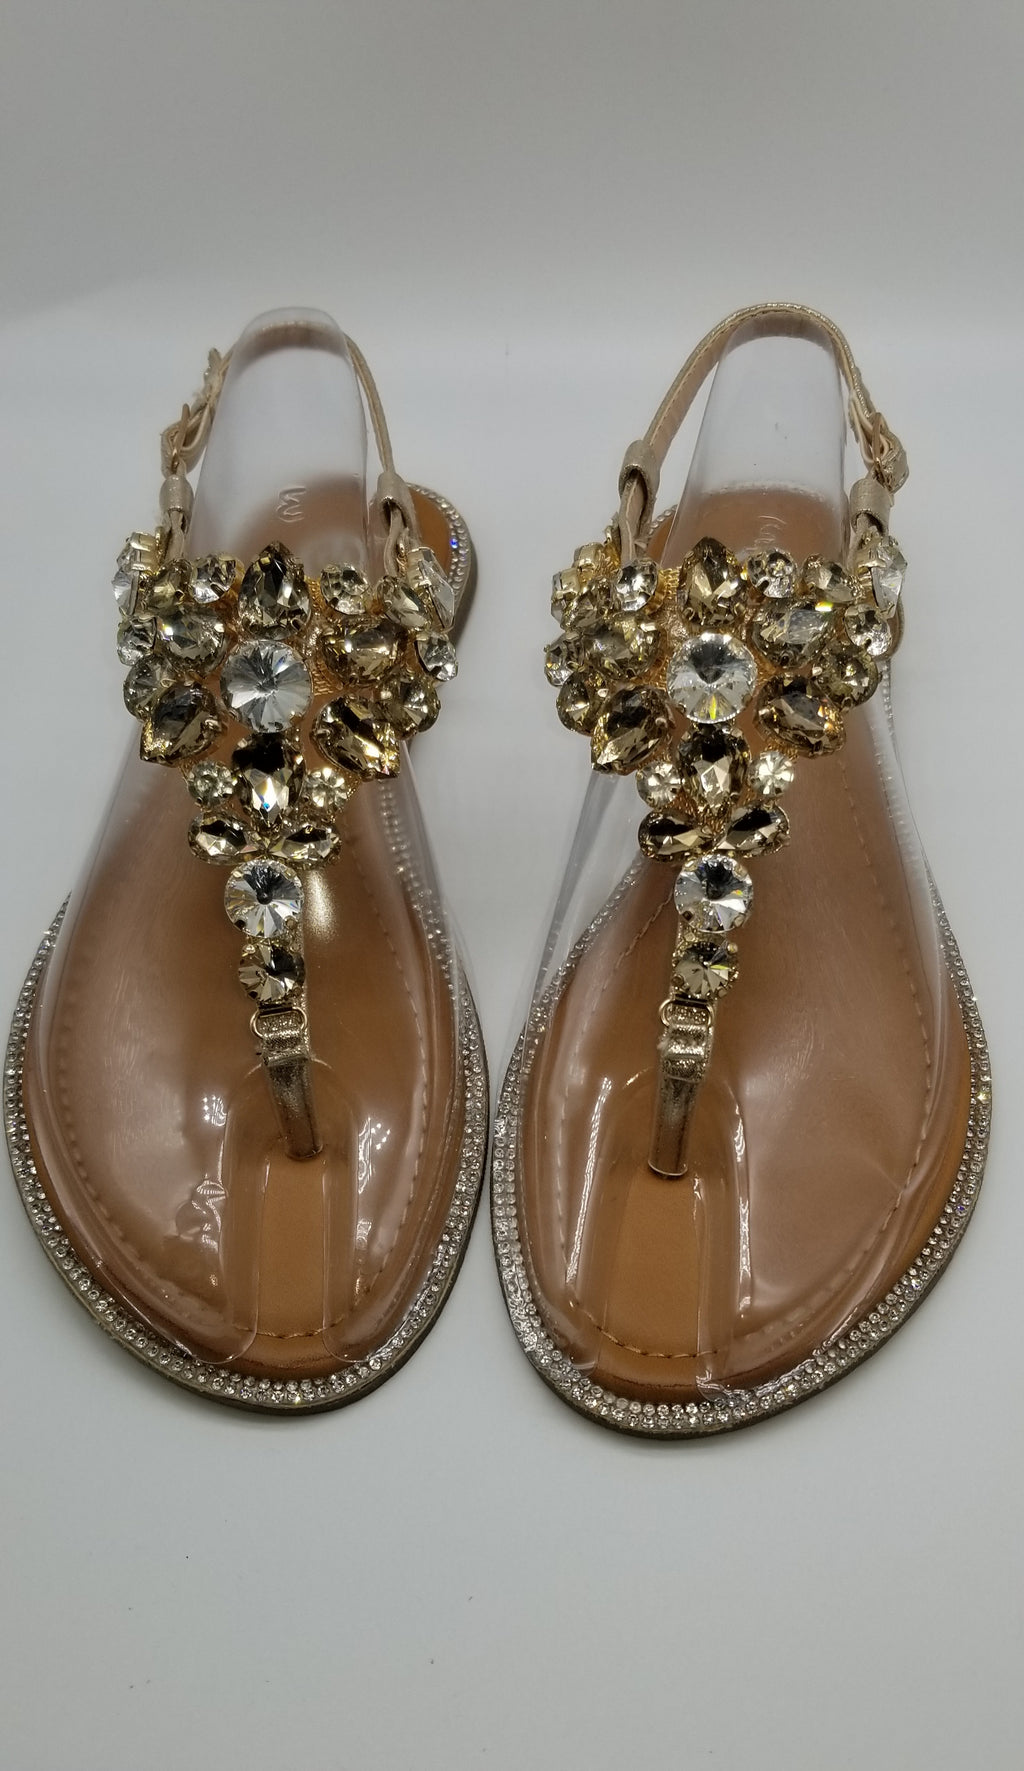 Dewi-22 Sandals - Amethyst Shoes